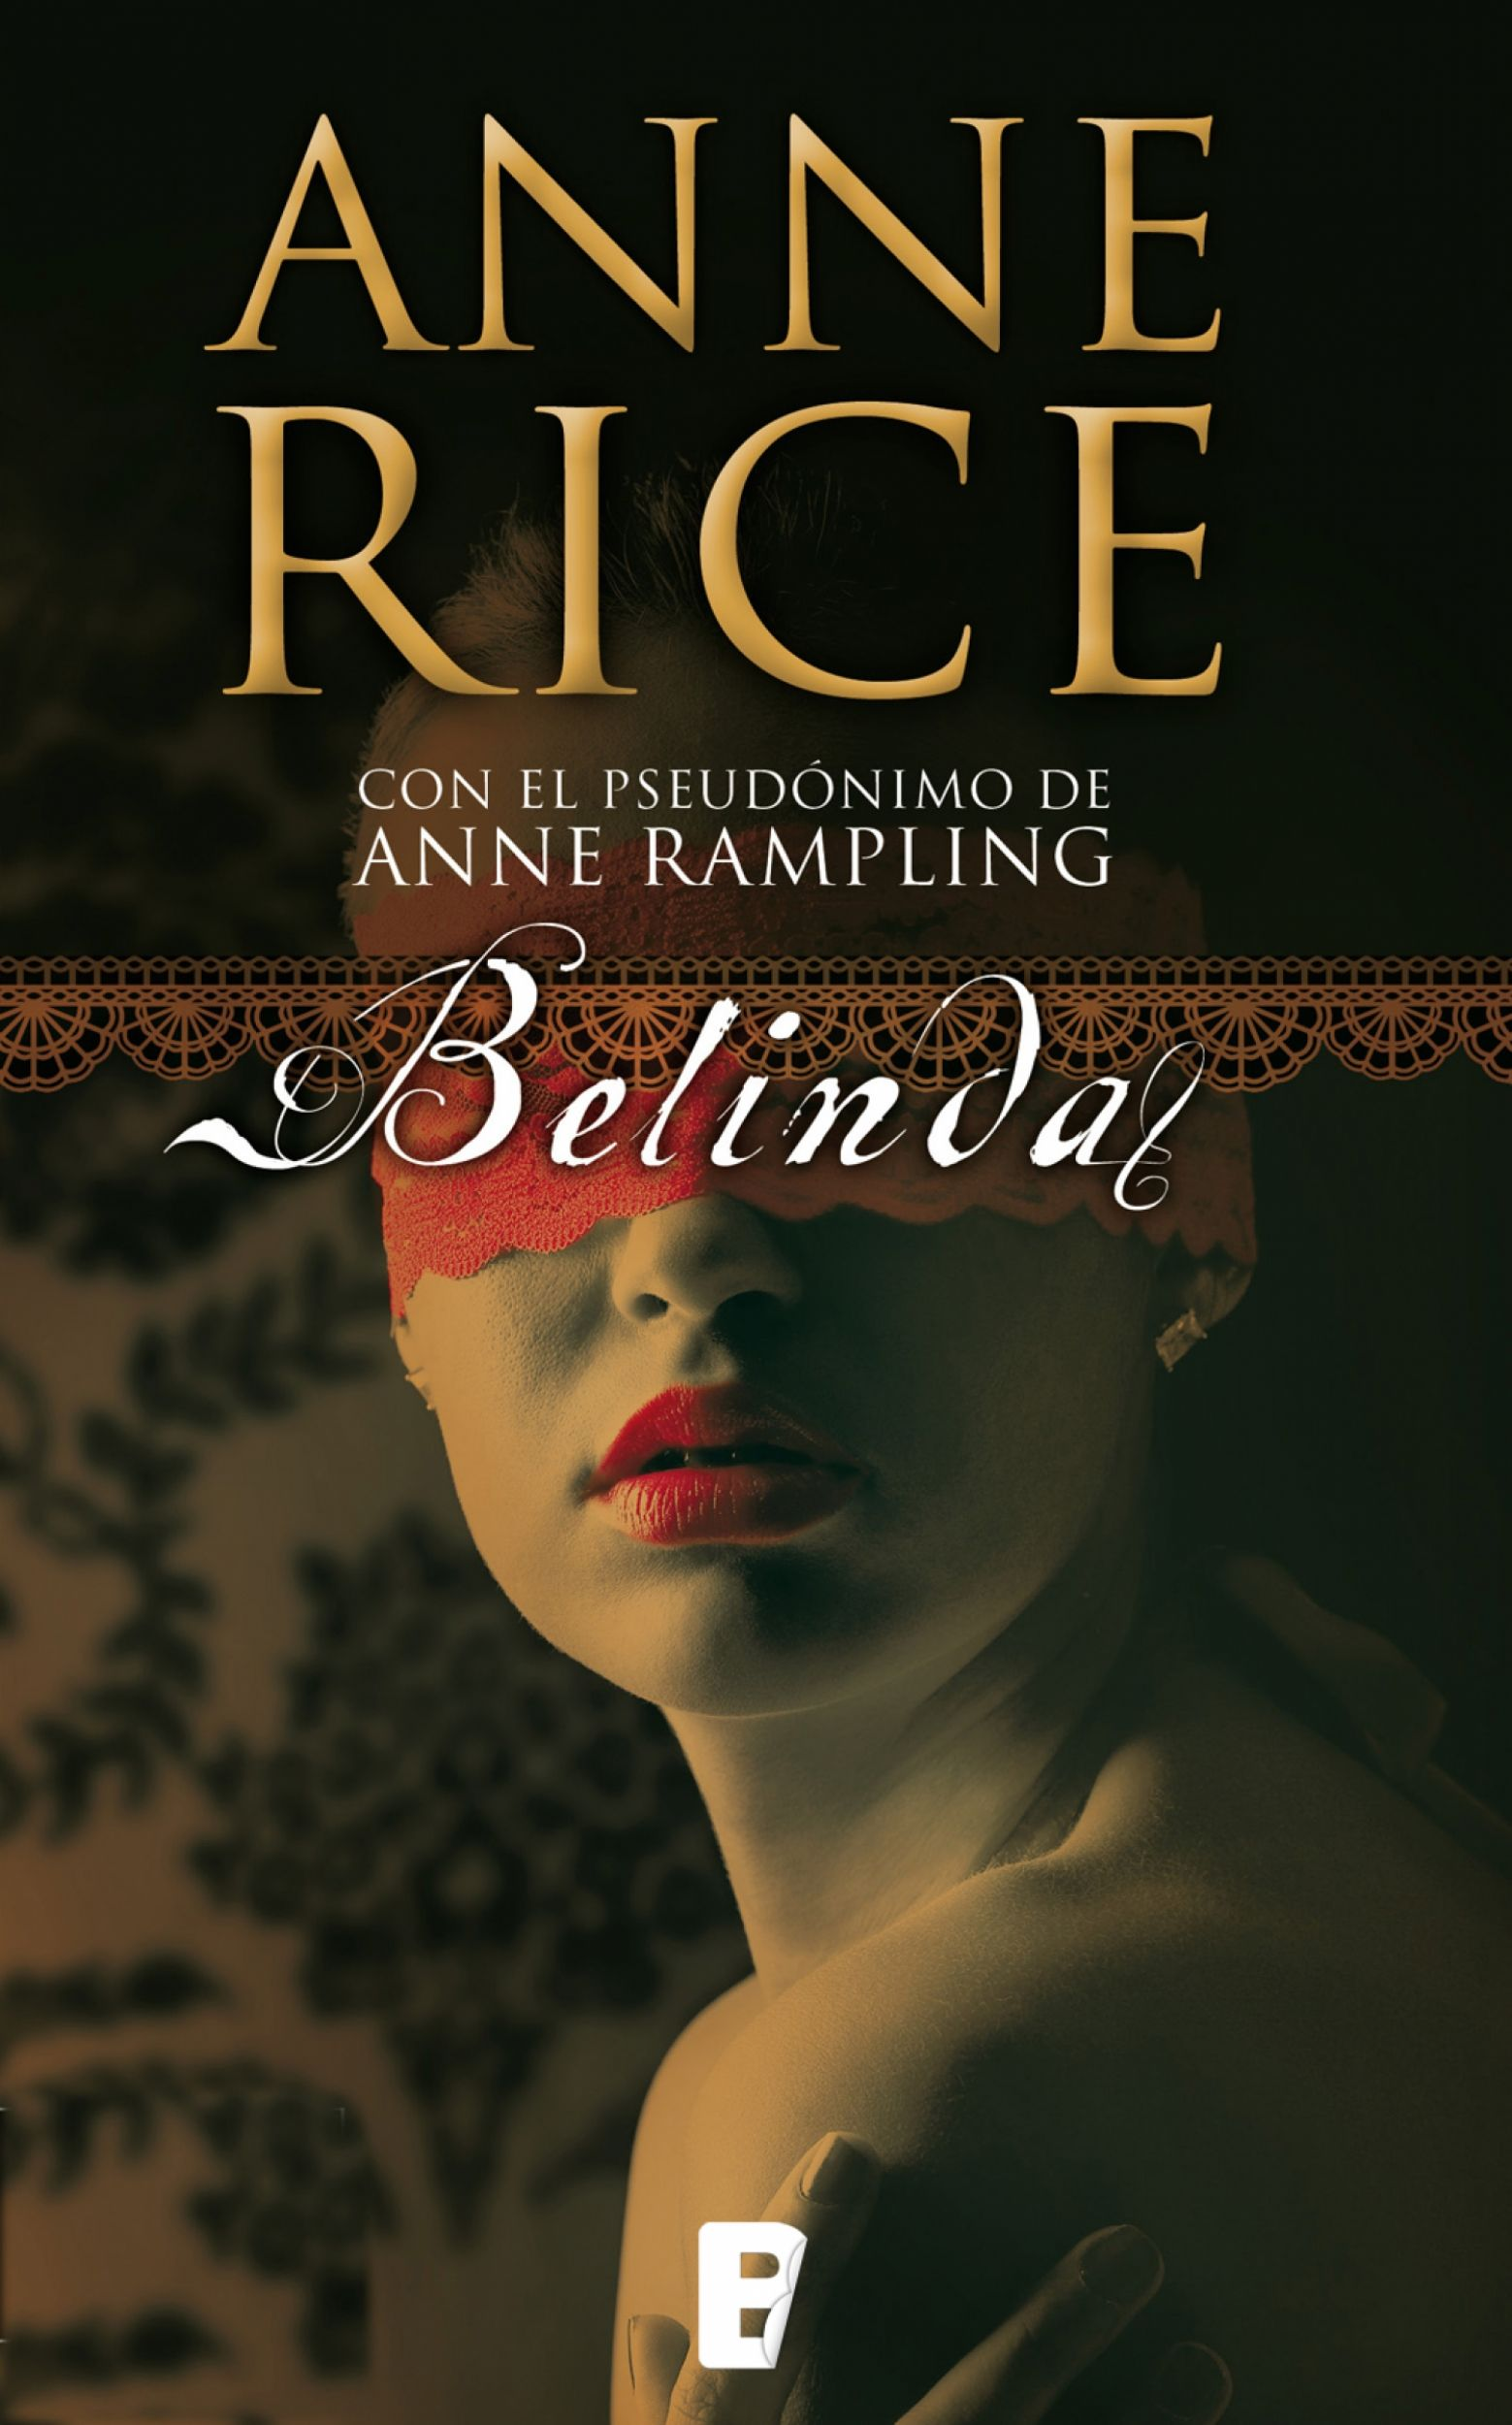 Seduccion Libro Pdf Belinda By Anne Rice My Fave Books Pinterest Libros